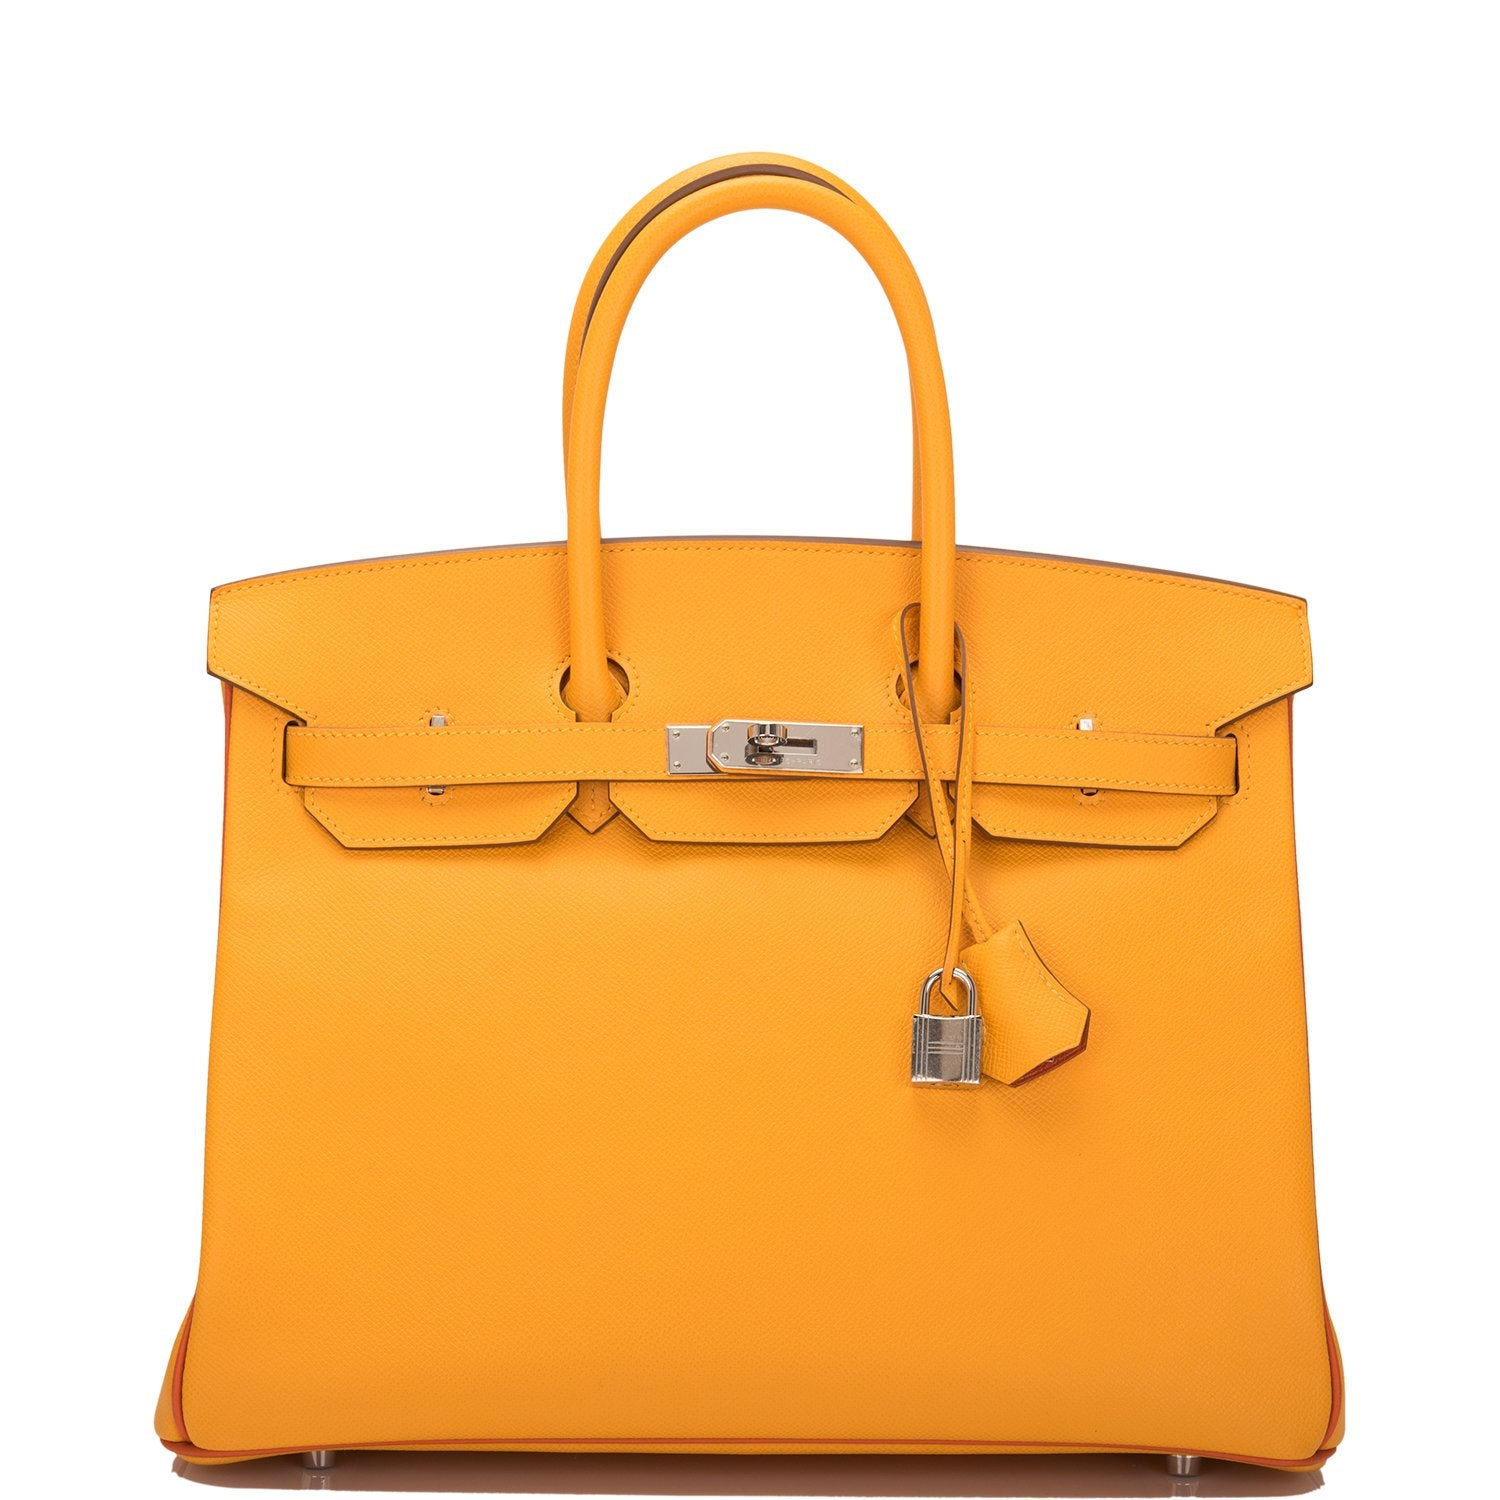 Hermes HSS SO Bi-Color Jaune D'Or and Sanguine Epsom Birkin 35cm Palladium Hardware